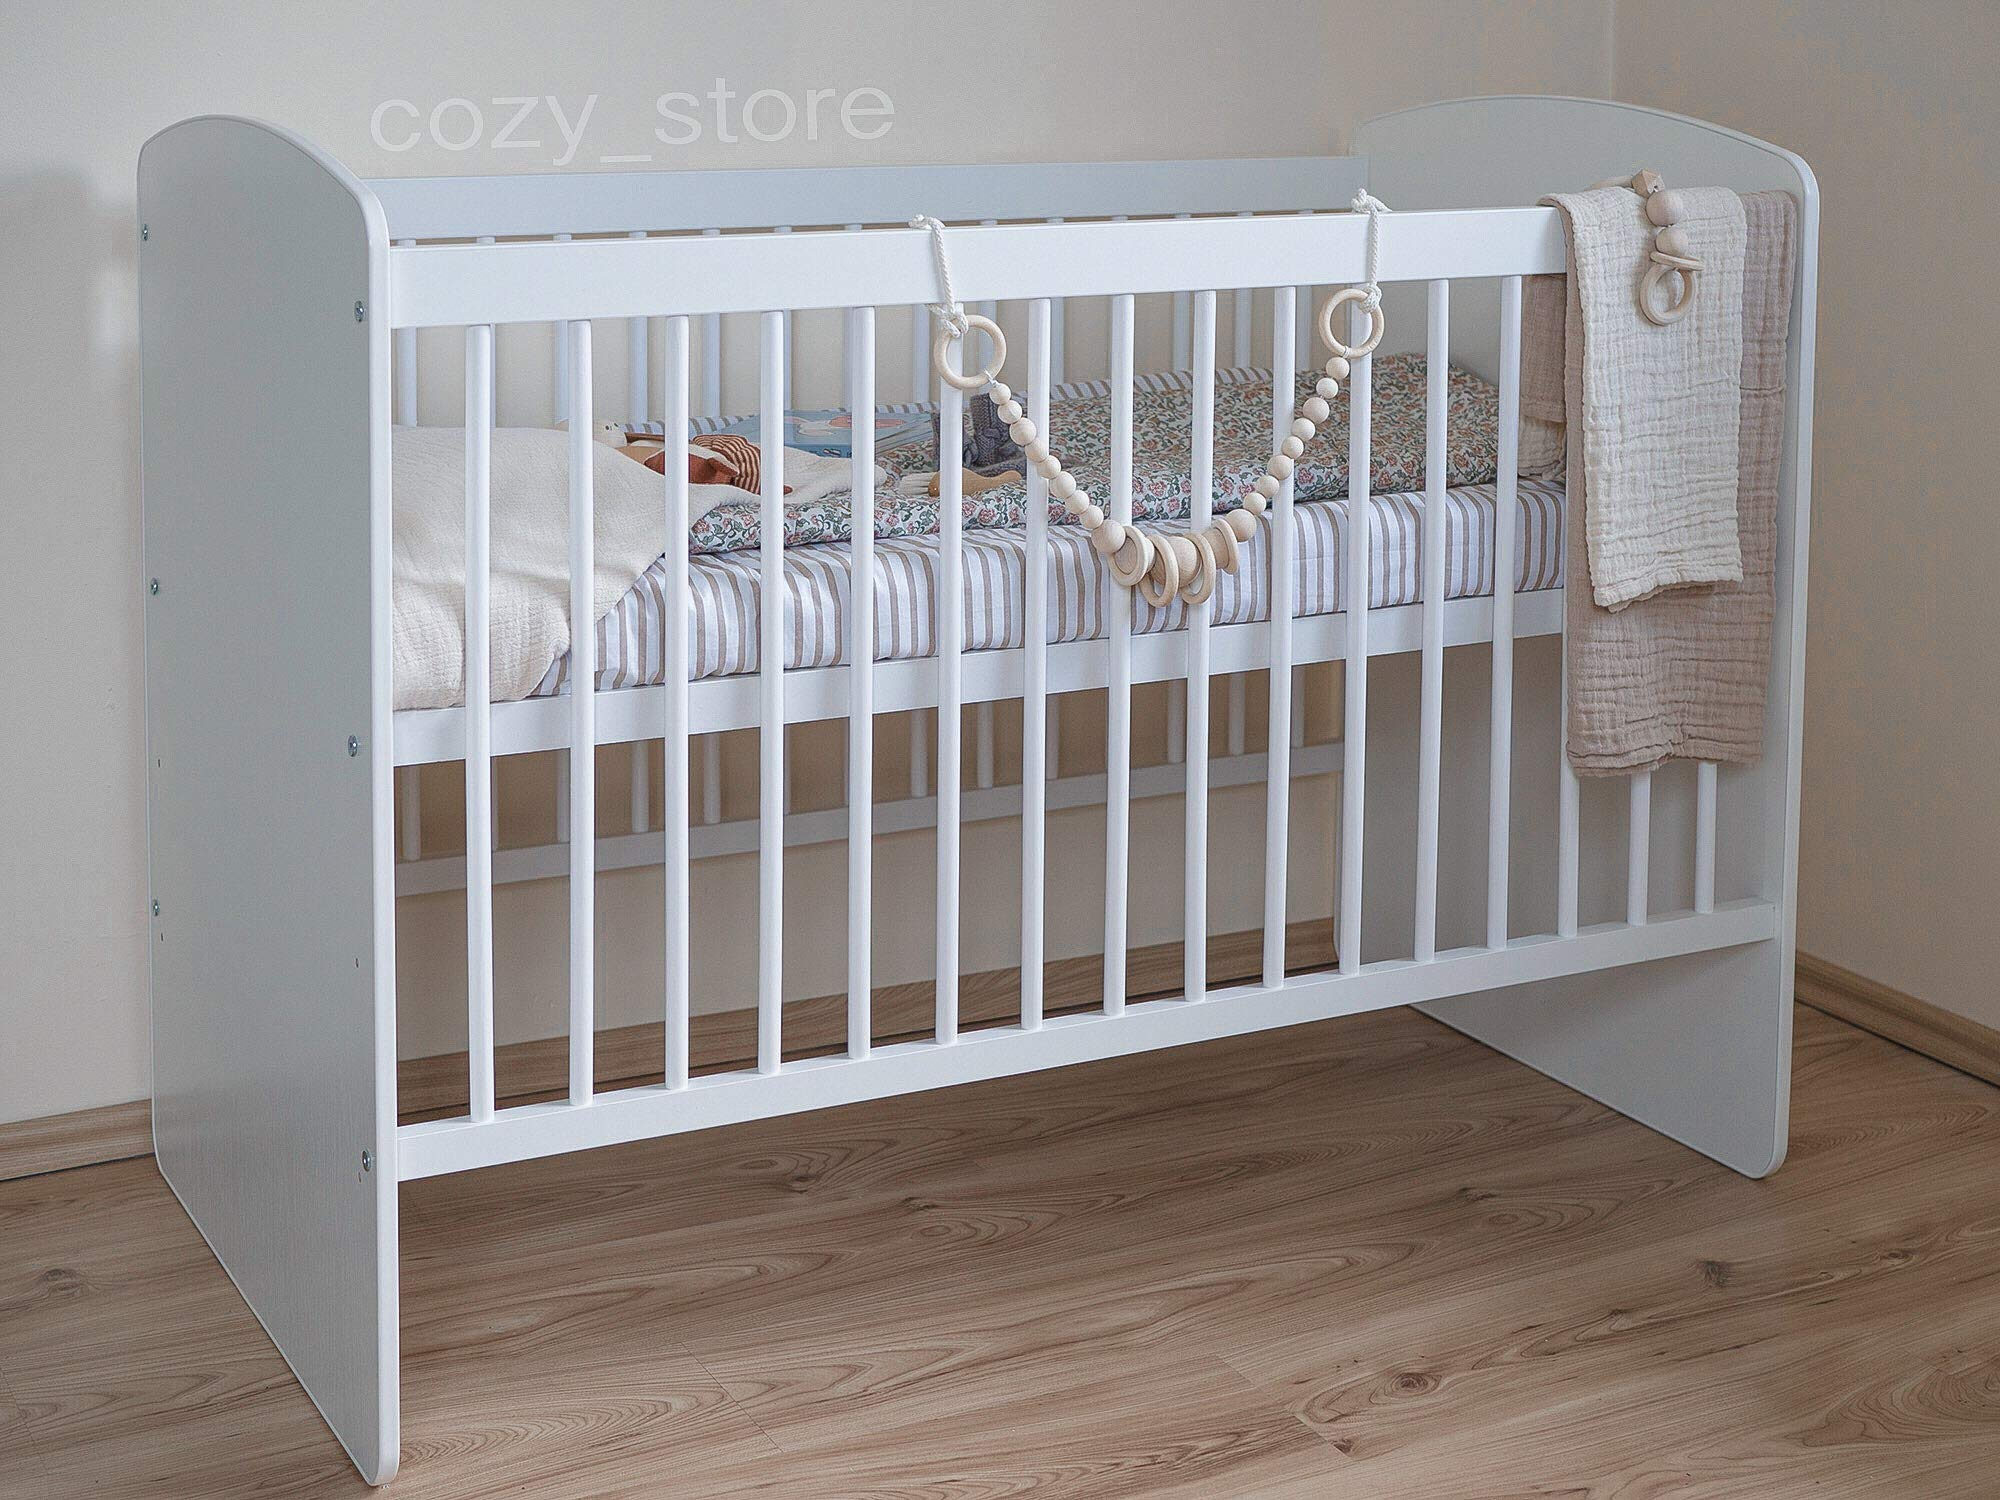 SOCOZY®   White Solid Pine Wood Baby Cot Bed I Free Healthy Coconut&BUCKWHEAT Mattress I Bed for Baby   3 Mattress Positions   ECO Paint   Minimalistic   120x60 SOCOZY ✔ HEALTH your growing child is the most important for us - The bed is made of ecological board and pine wood and the cot is covered with non-toxic lacquers ✔ ENJOY the view of the child playing in the cot and have a moment to yourself - as mom you deserve it more than anyone else ✔ GIVE YOUR CHILD a peaceful and helathy sleep - Coconut mat provides a flat, hard but also elastic support for the body while sleeping, perfect air circulation and humidity control. The mat is ecological. 1